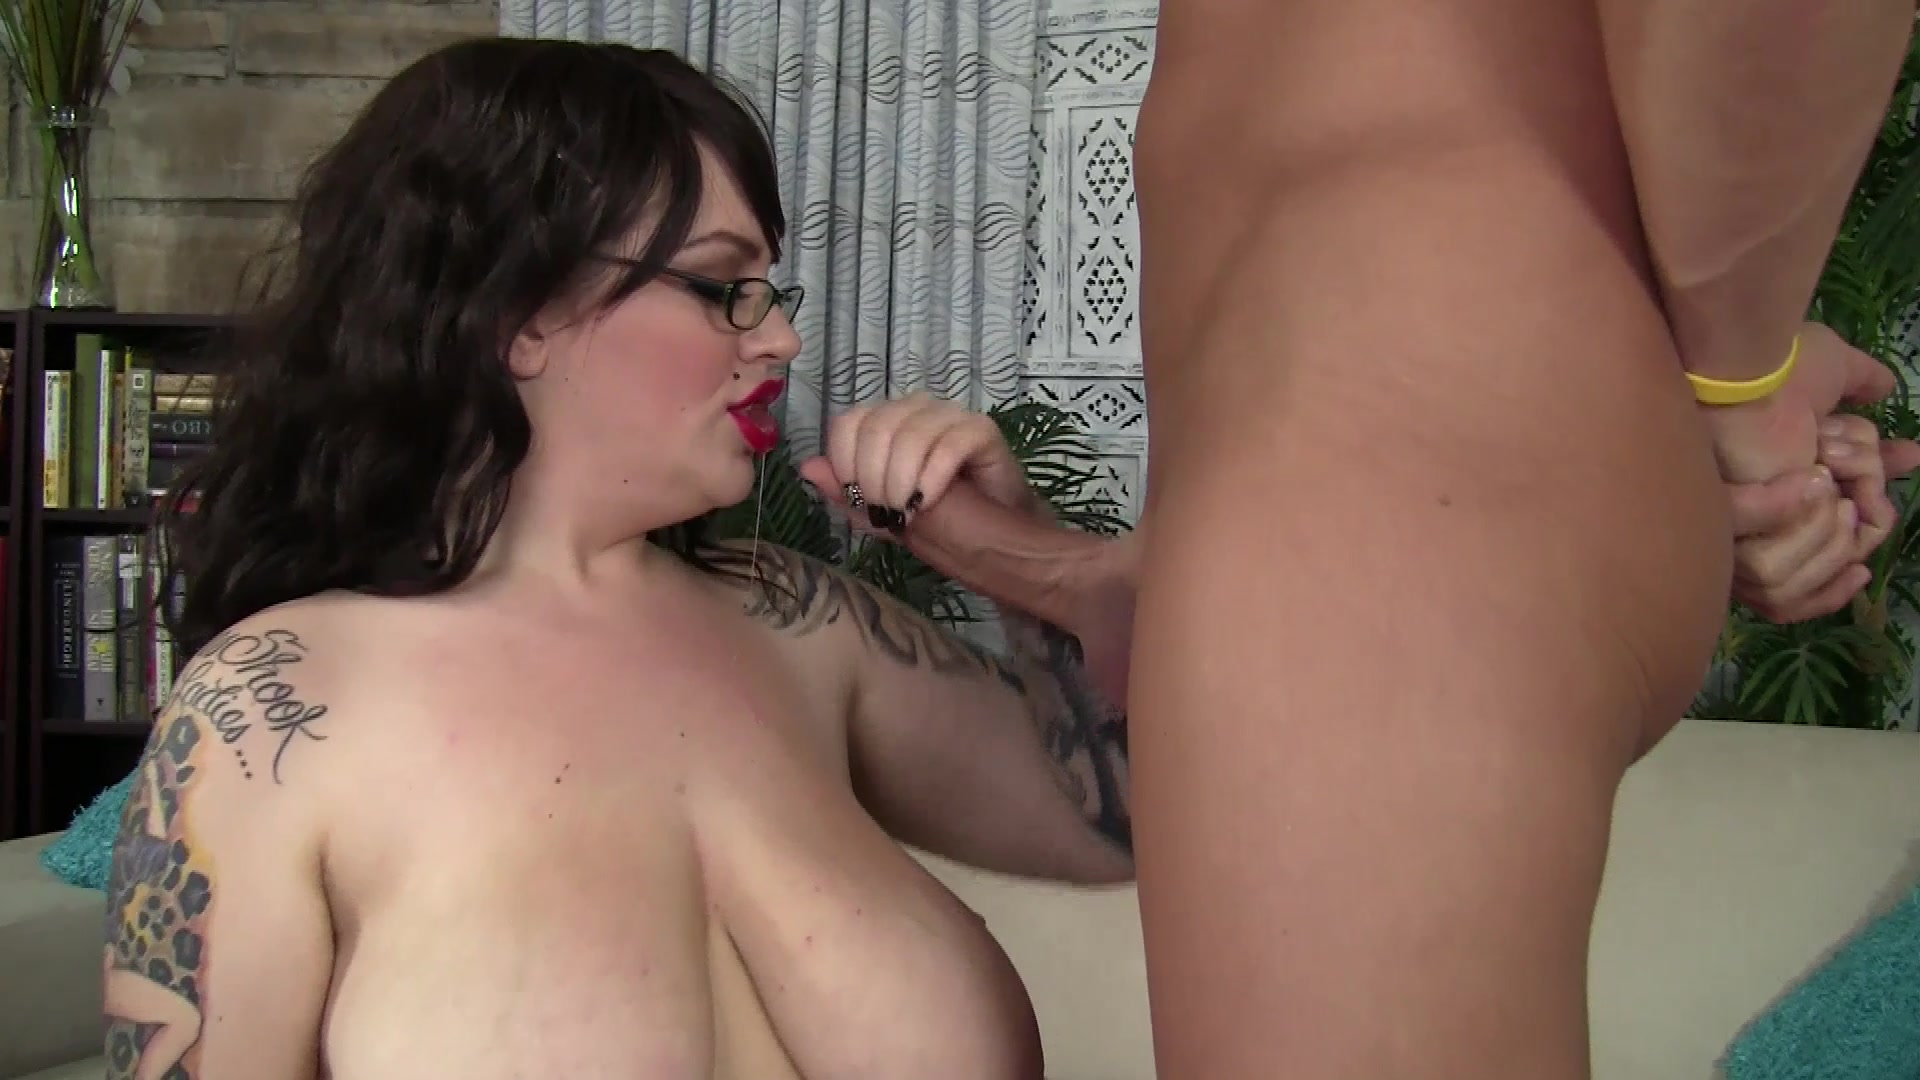 Cock and balls video